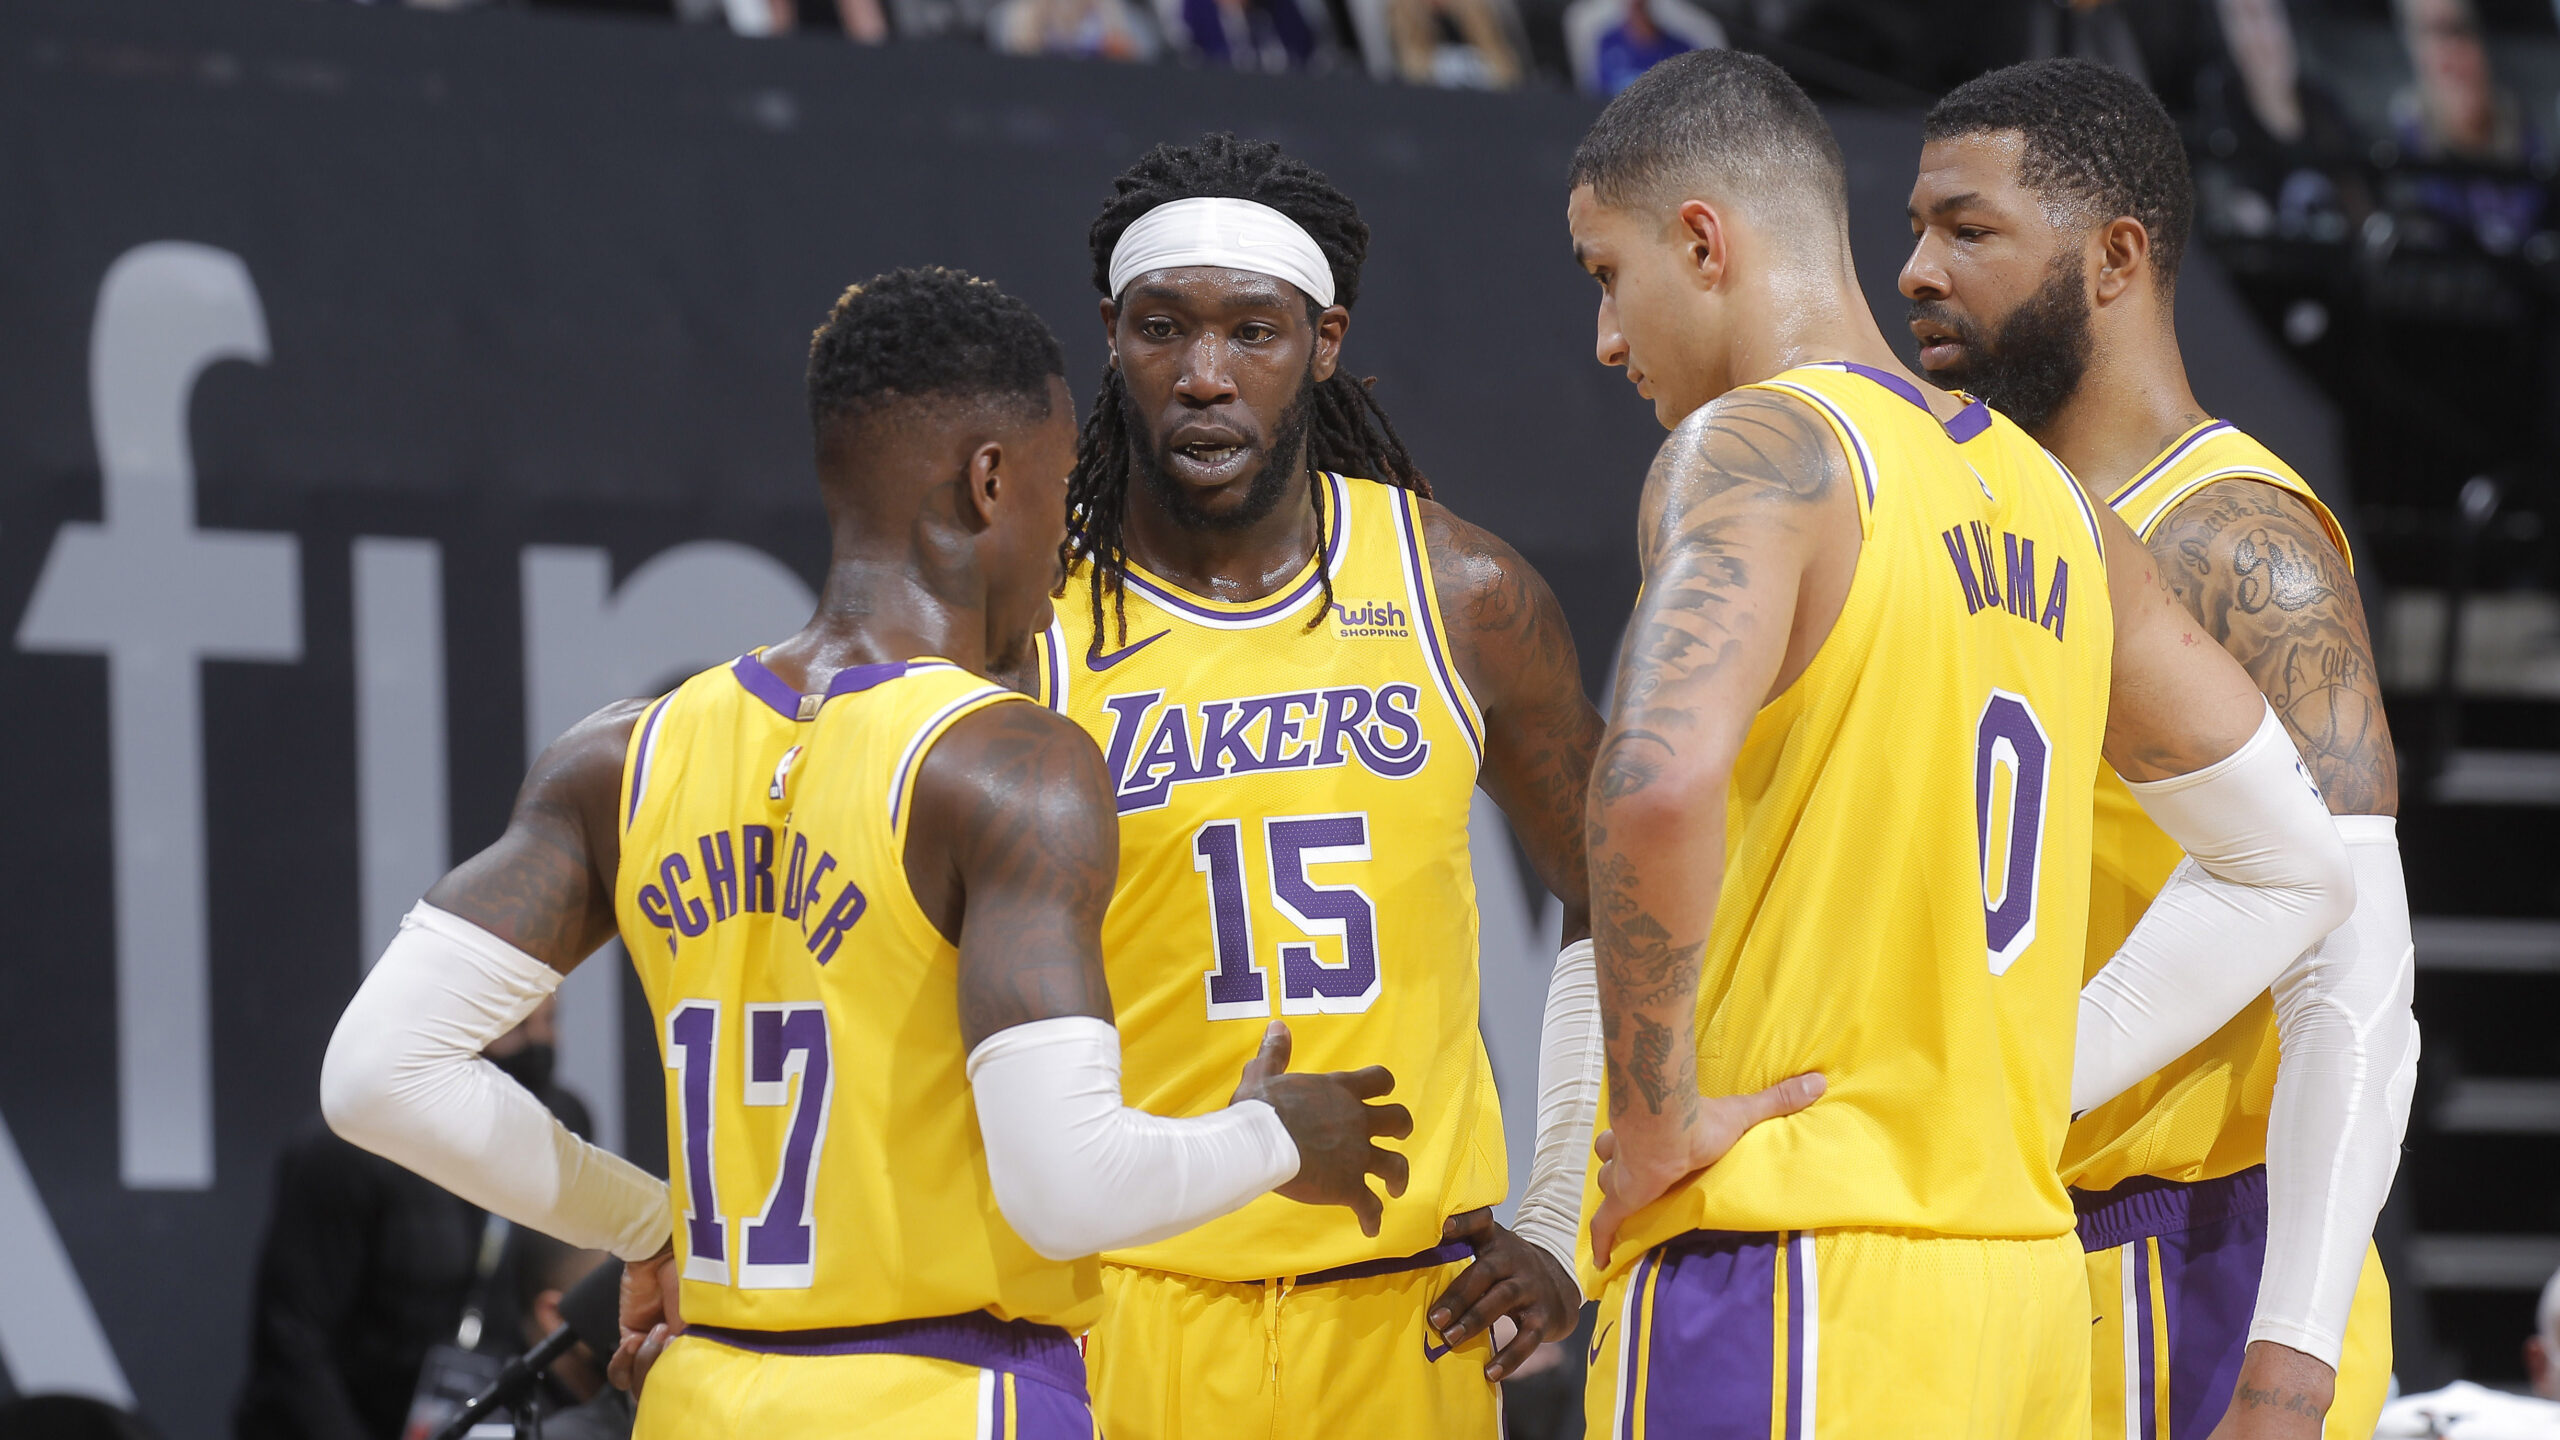 Lakers stay afloat in West without LeBron James and Anthony Davis